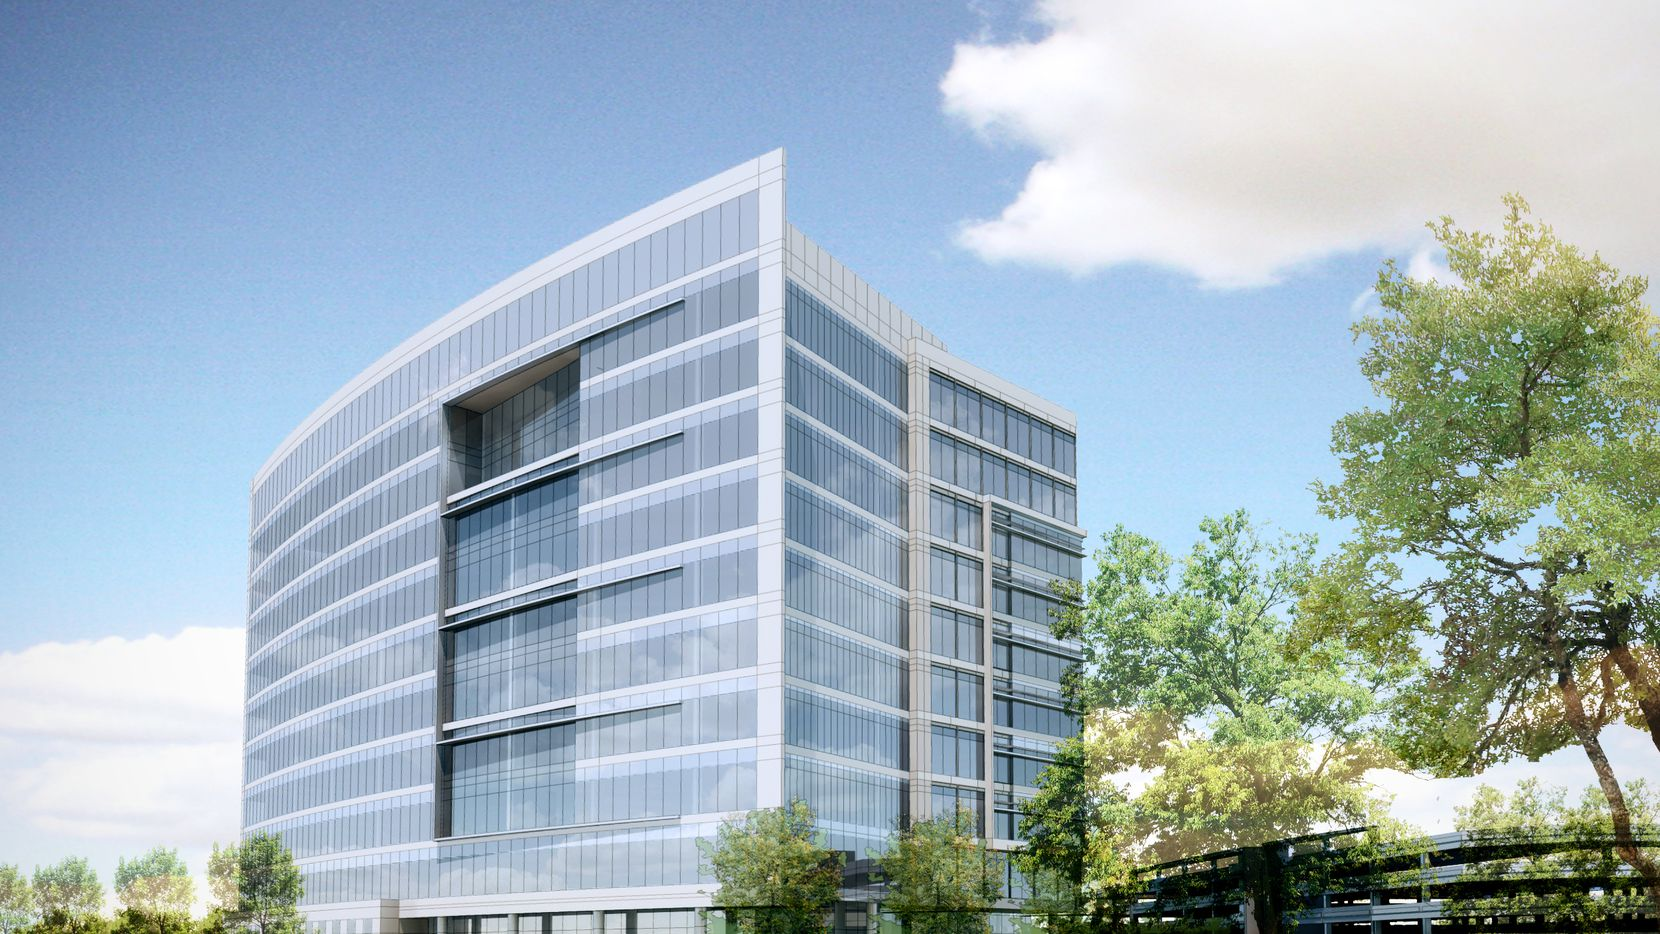 Developer Granite Properties is building the new regional office for mortgage giant Fannie Mae in Plano.